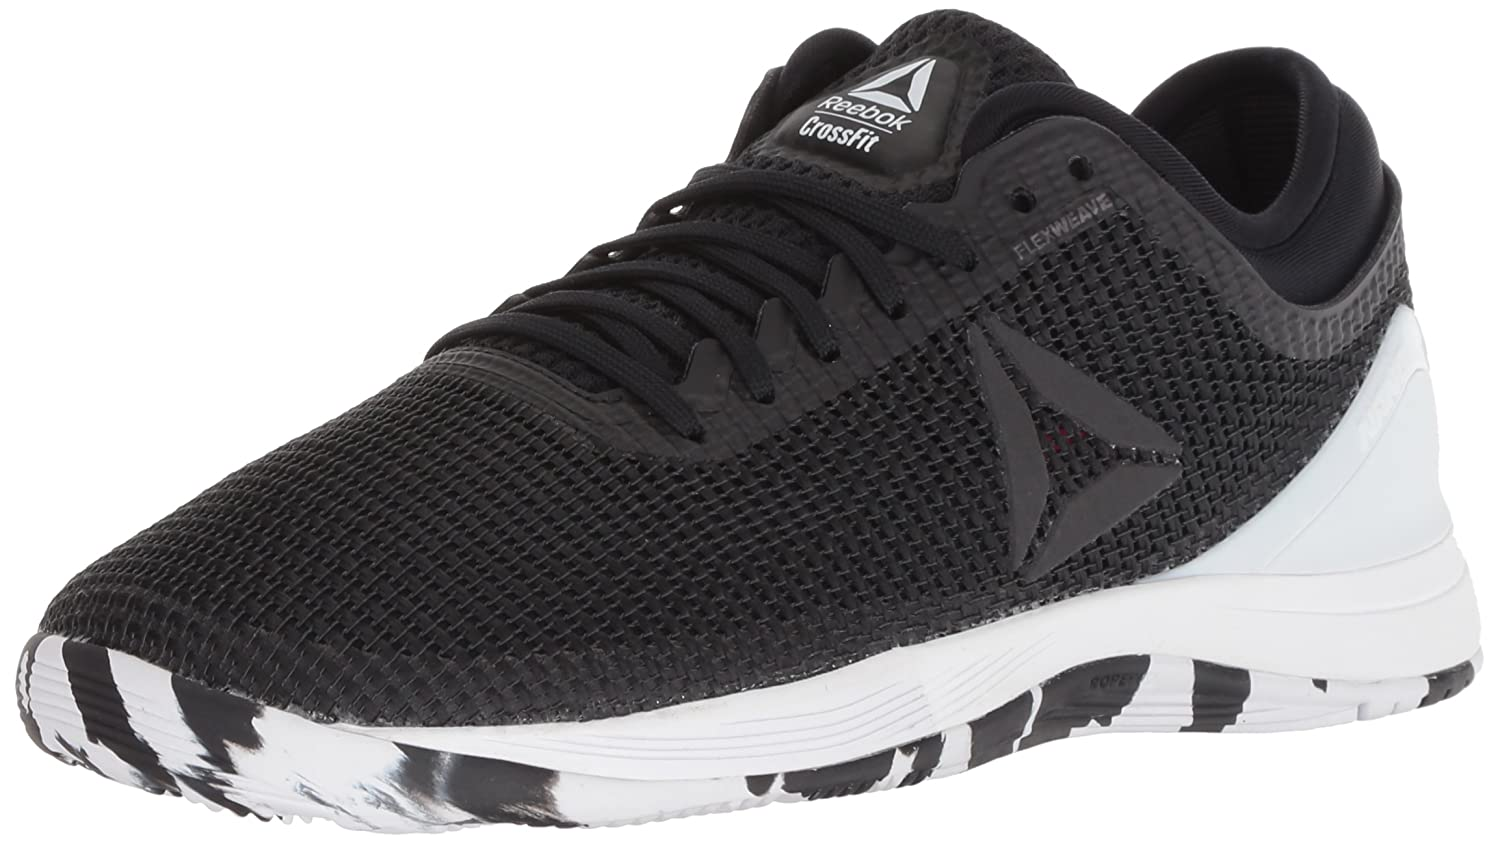 Reebok Women's Crossfit Nano 8.0 Flexweave Cross Trainer B077ZJGQB9 10 B(M) US|Black/White/Twisted Pink